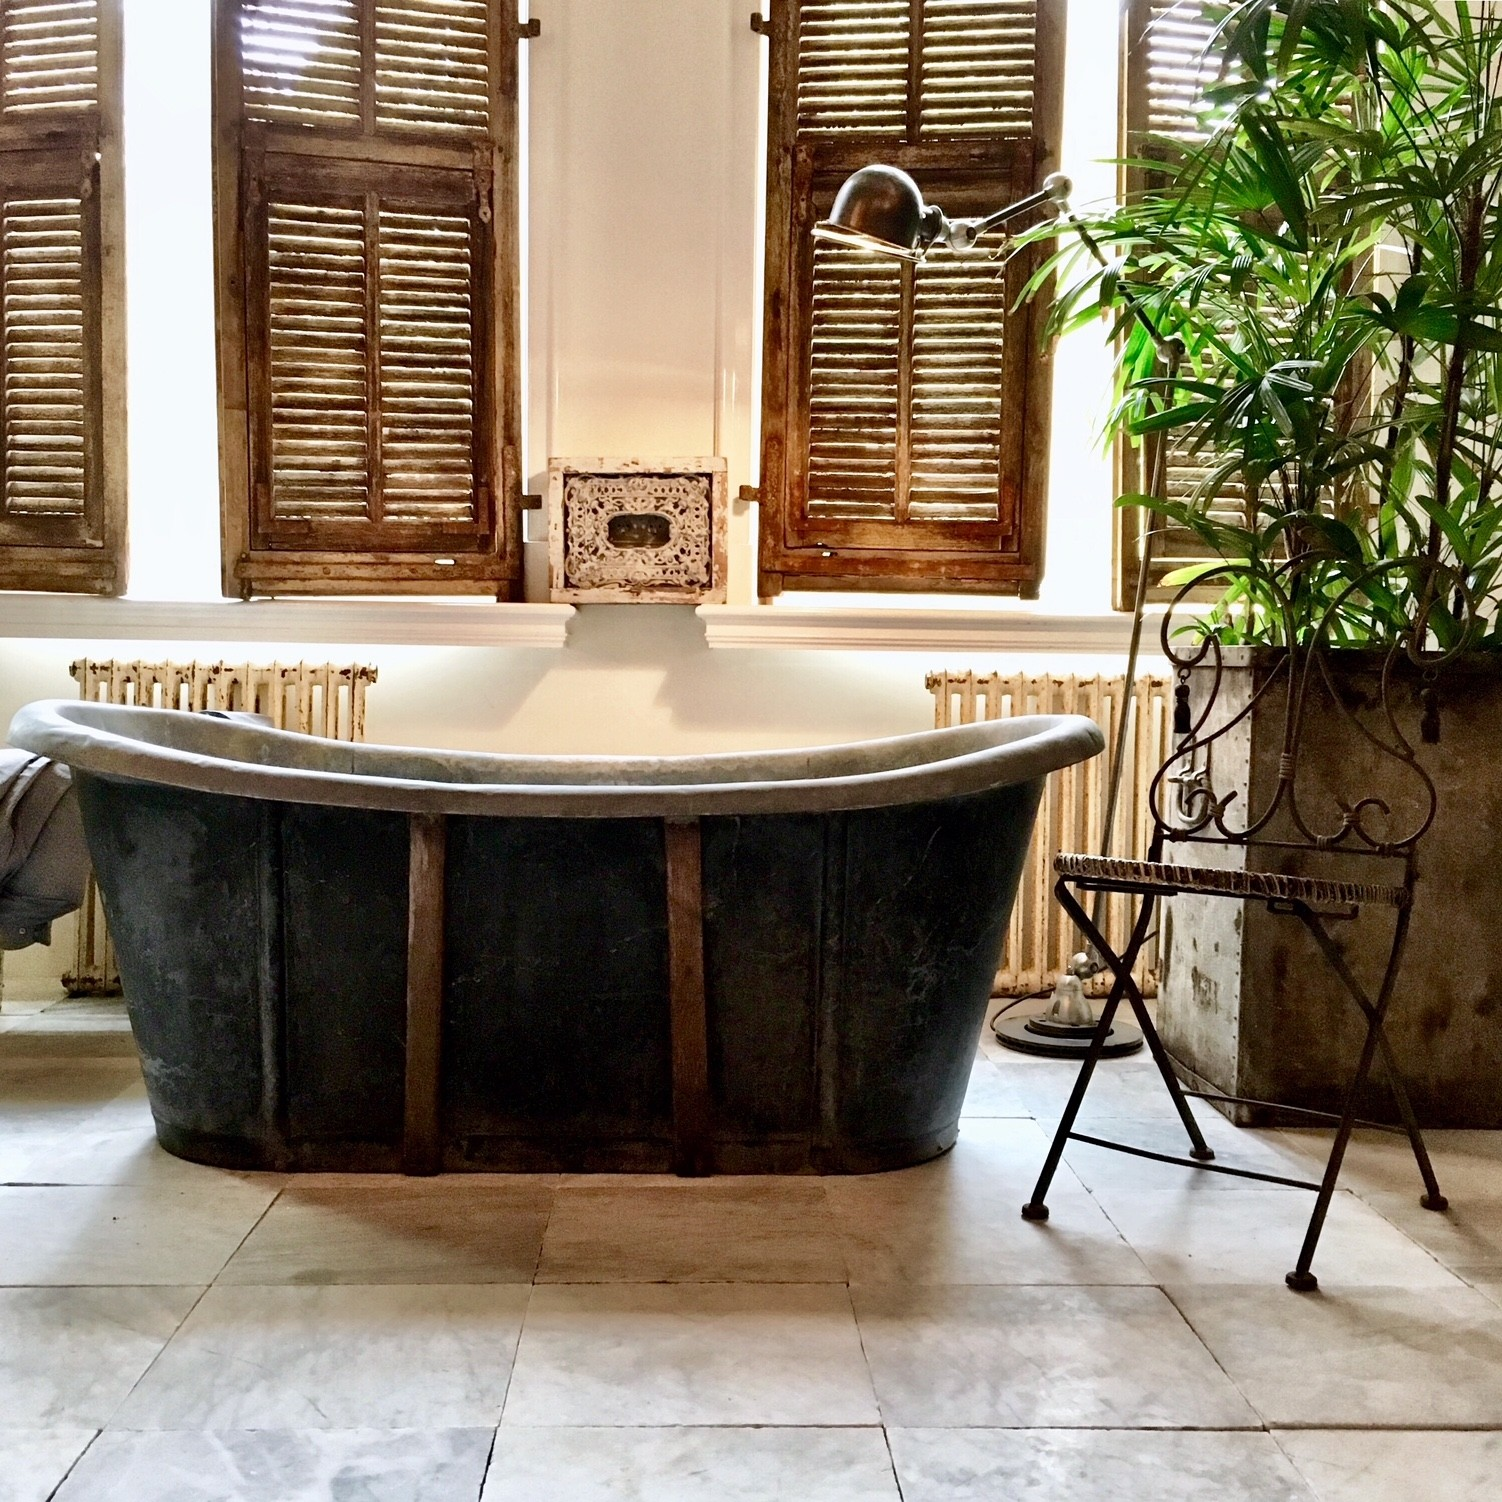 Antique sink bathtub